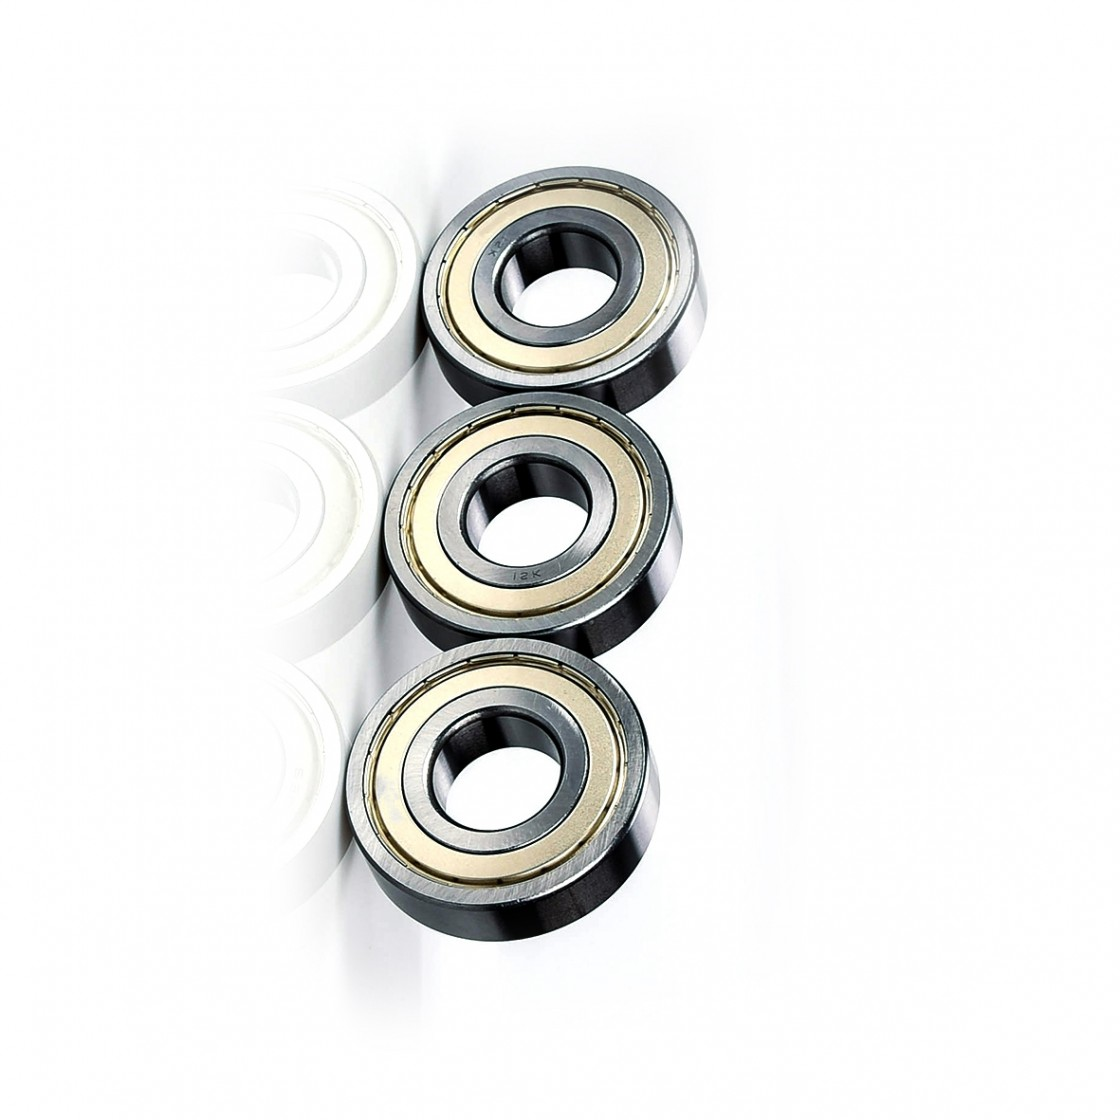 Distributor High Precision Large Stocks Motorcycle Bearing NTN Koyo NSK SKF FAG Koyo NACHI Bearing 6000 Series 6200 Series 6300 Series 6400